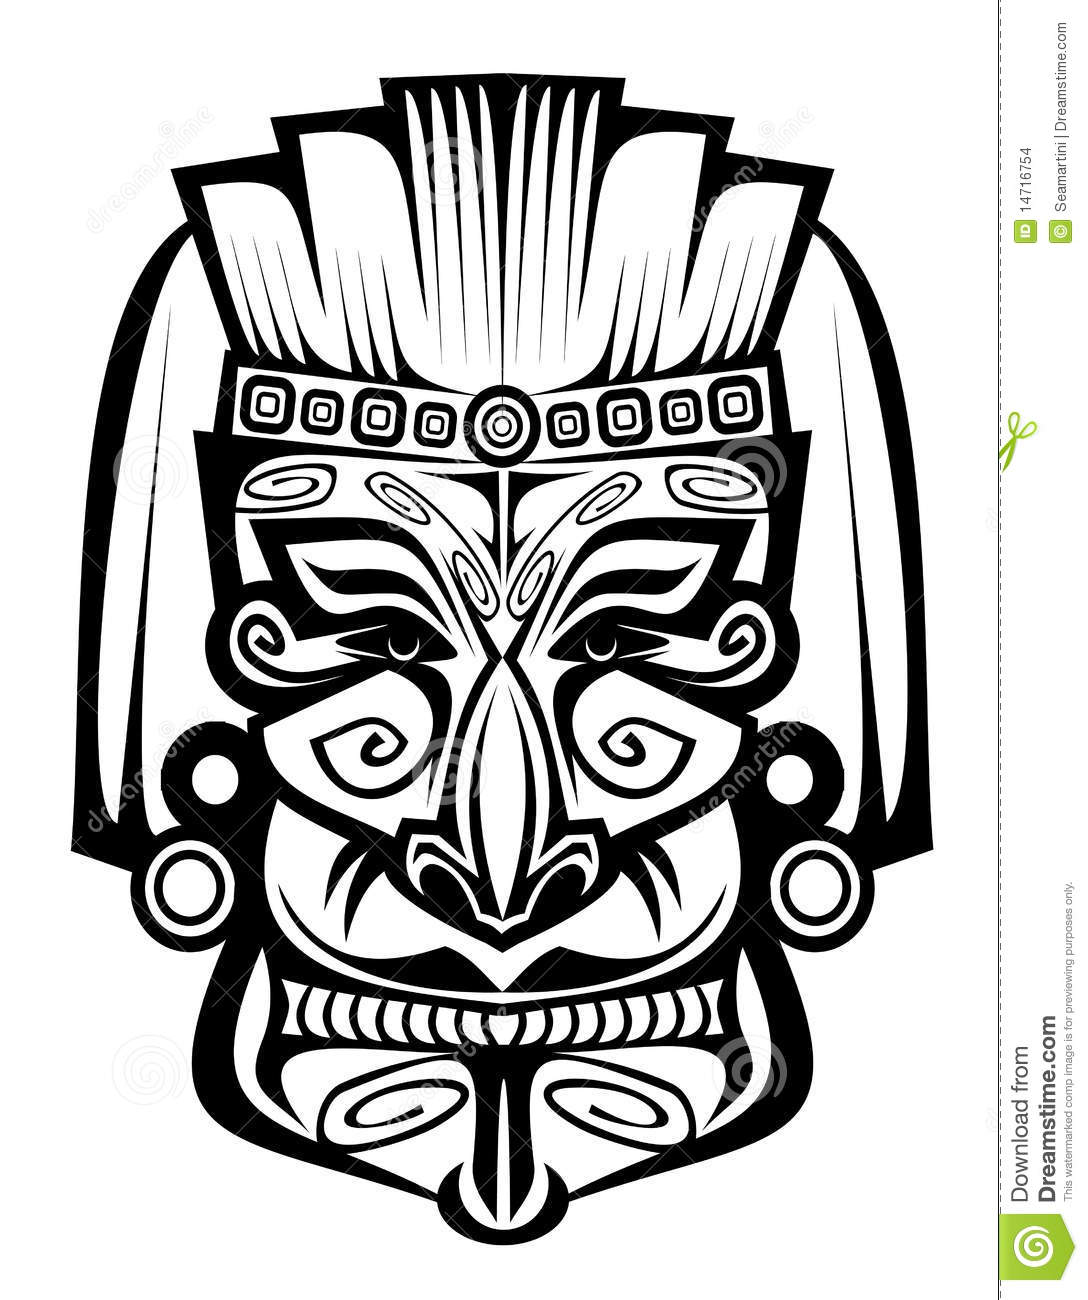 aztec mask template - mayan masks template search results calendar 2015